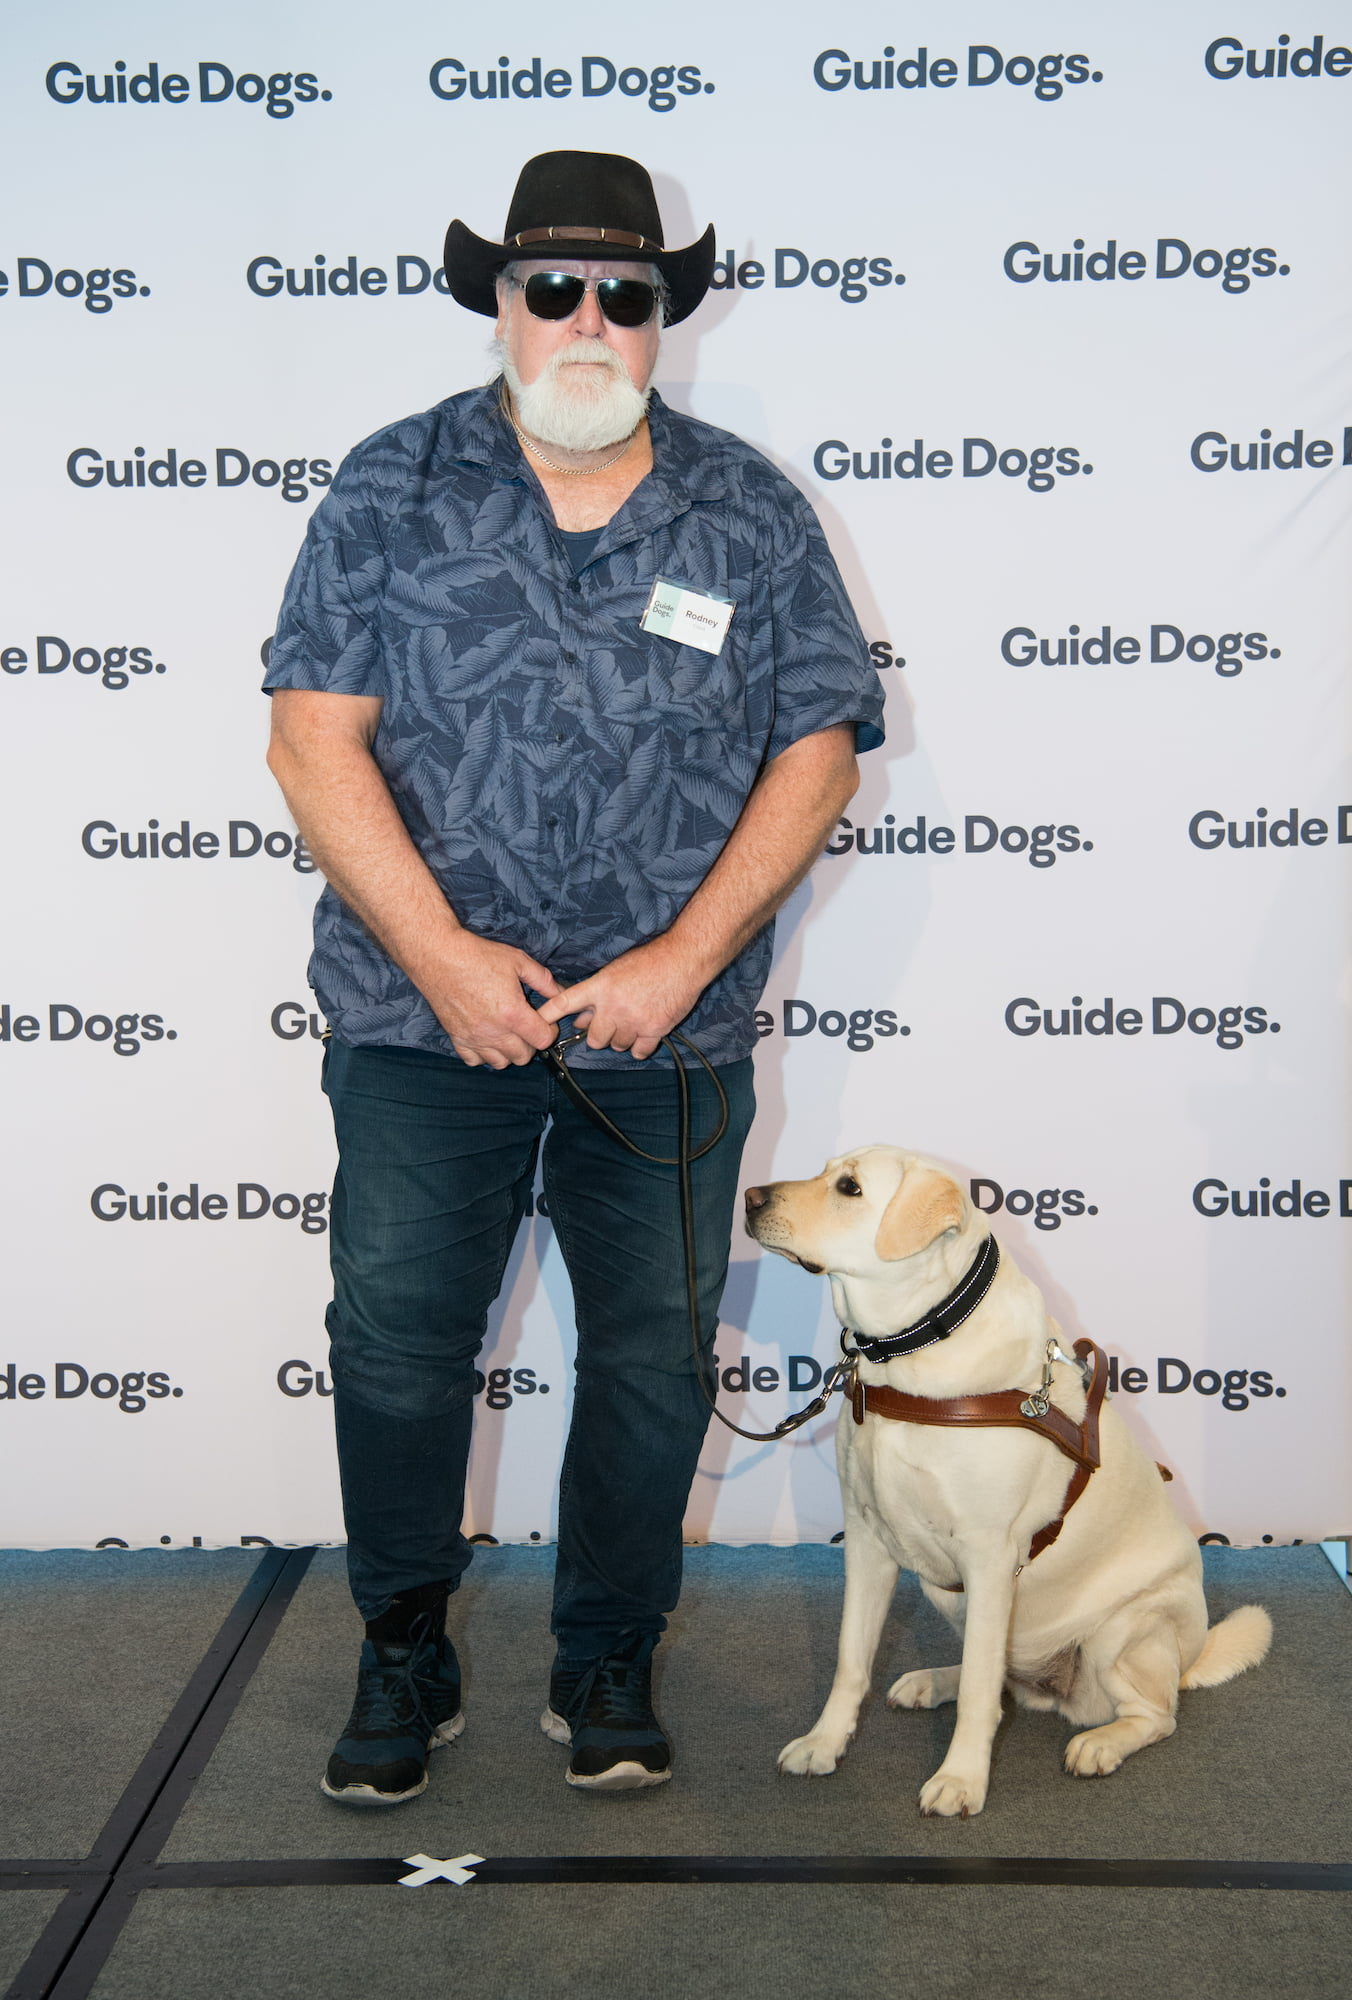 Guide Dogs Client Rodney standing on stage with his Guide Dog Kit, a yellow Labrador wearing a harness.